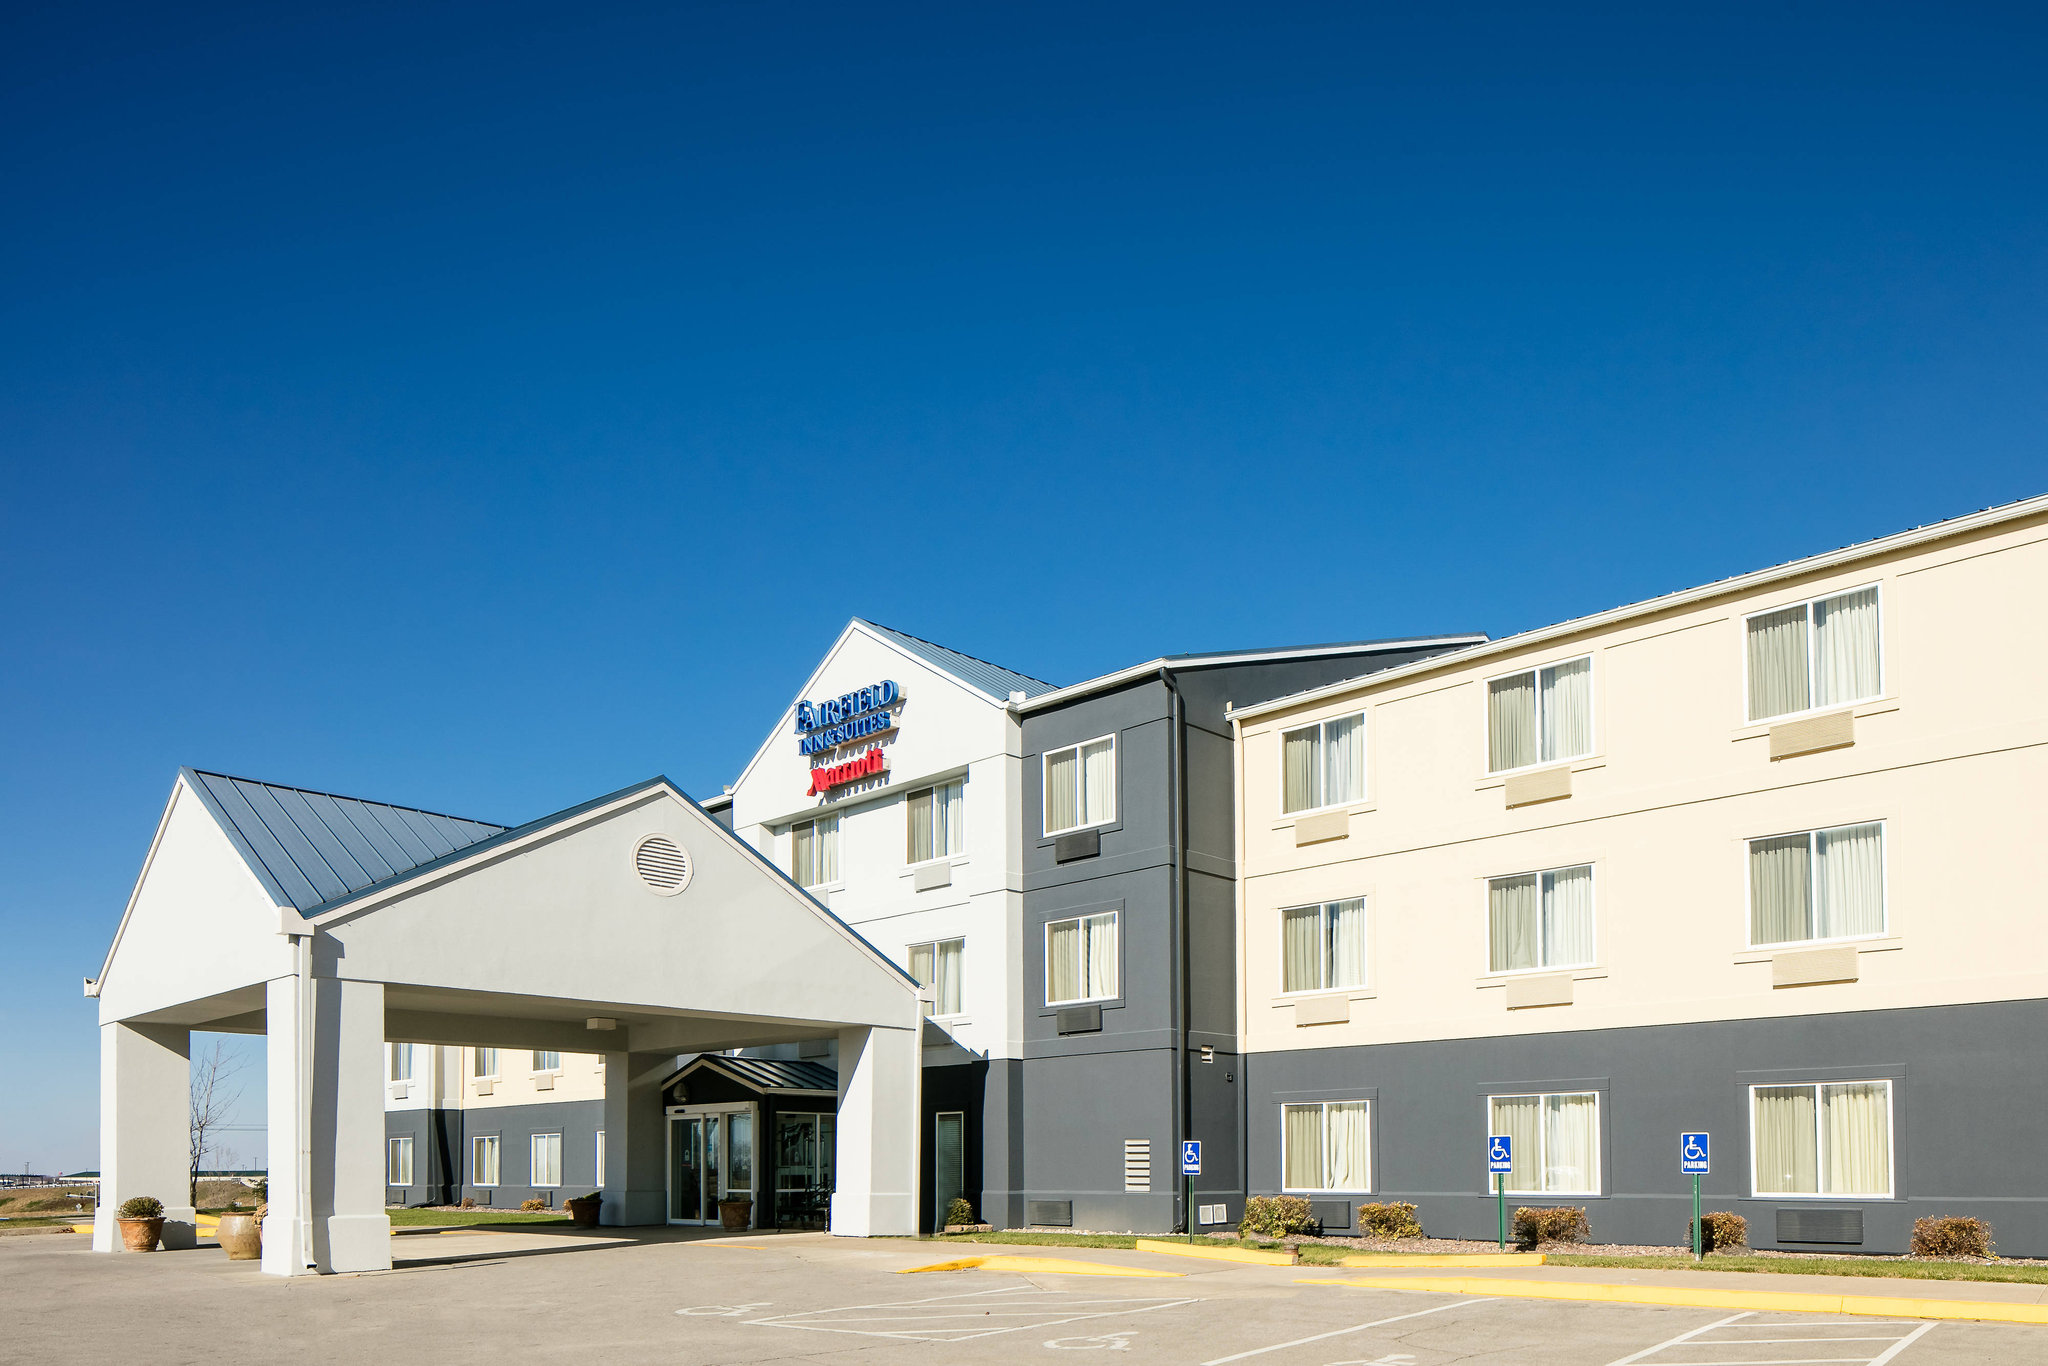 Fairfield Inn and Suites by Marriott Kansas City Airport